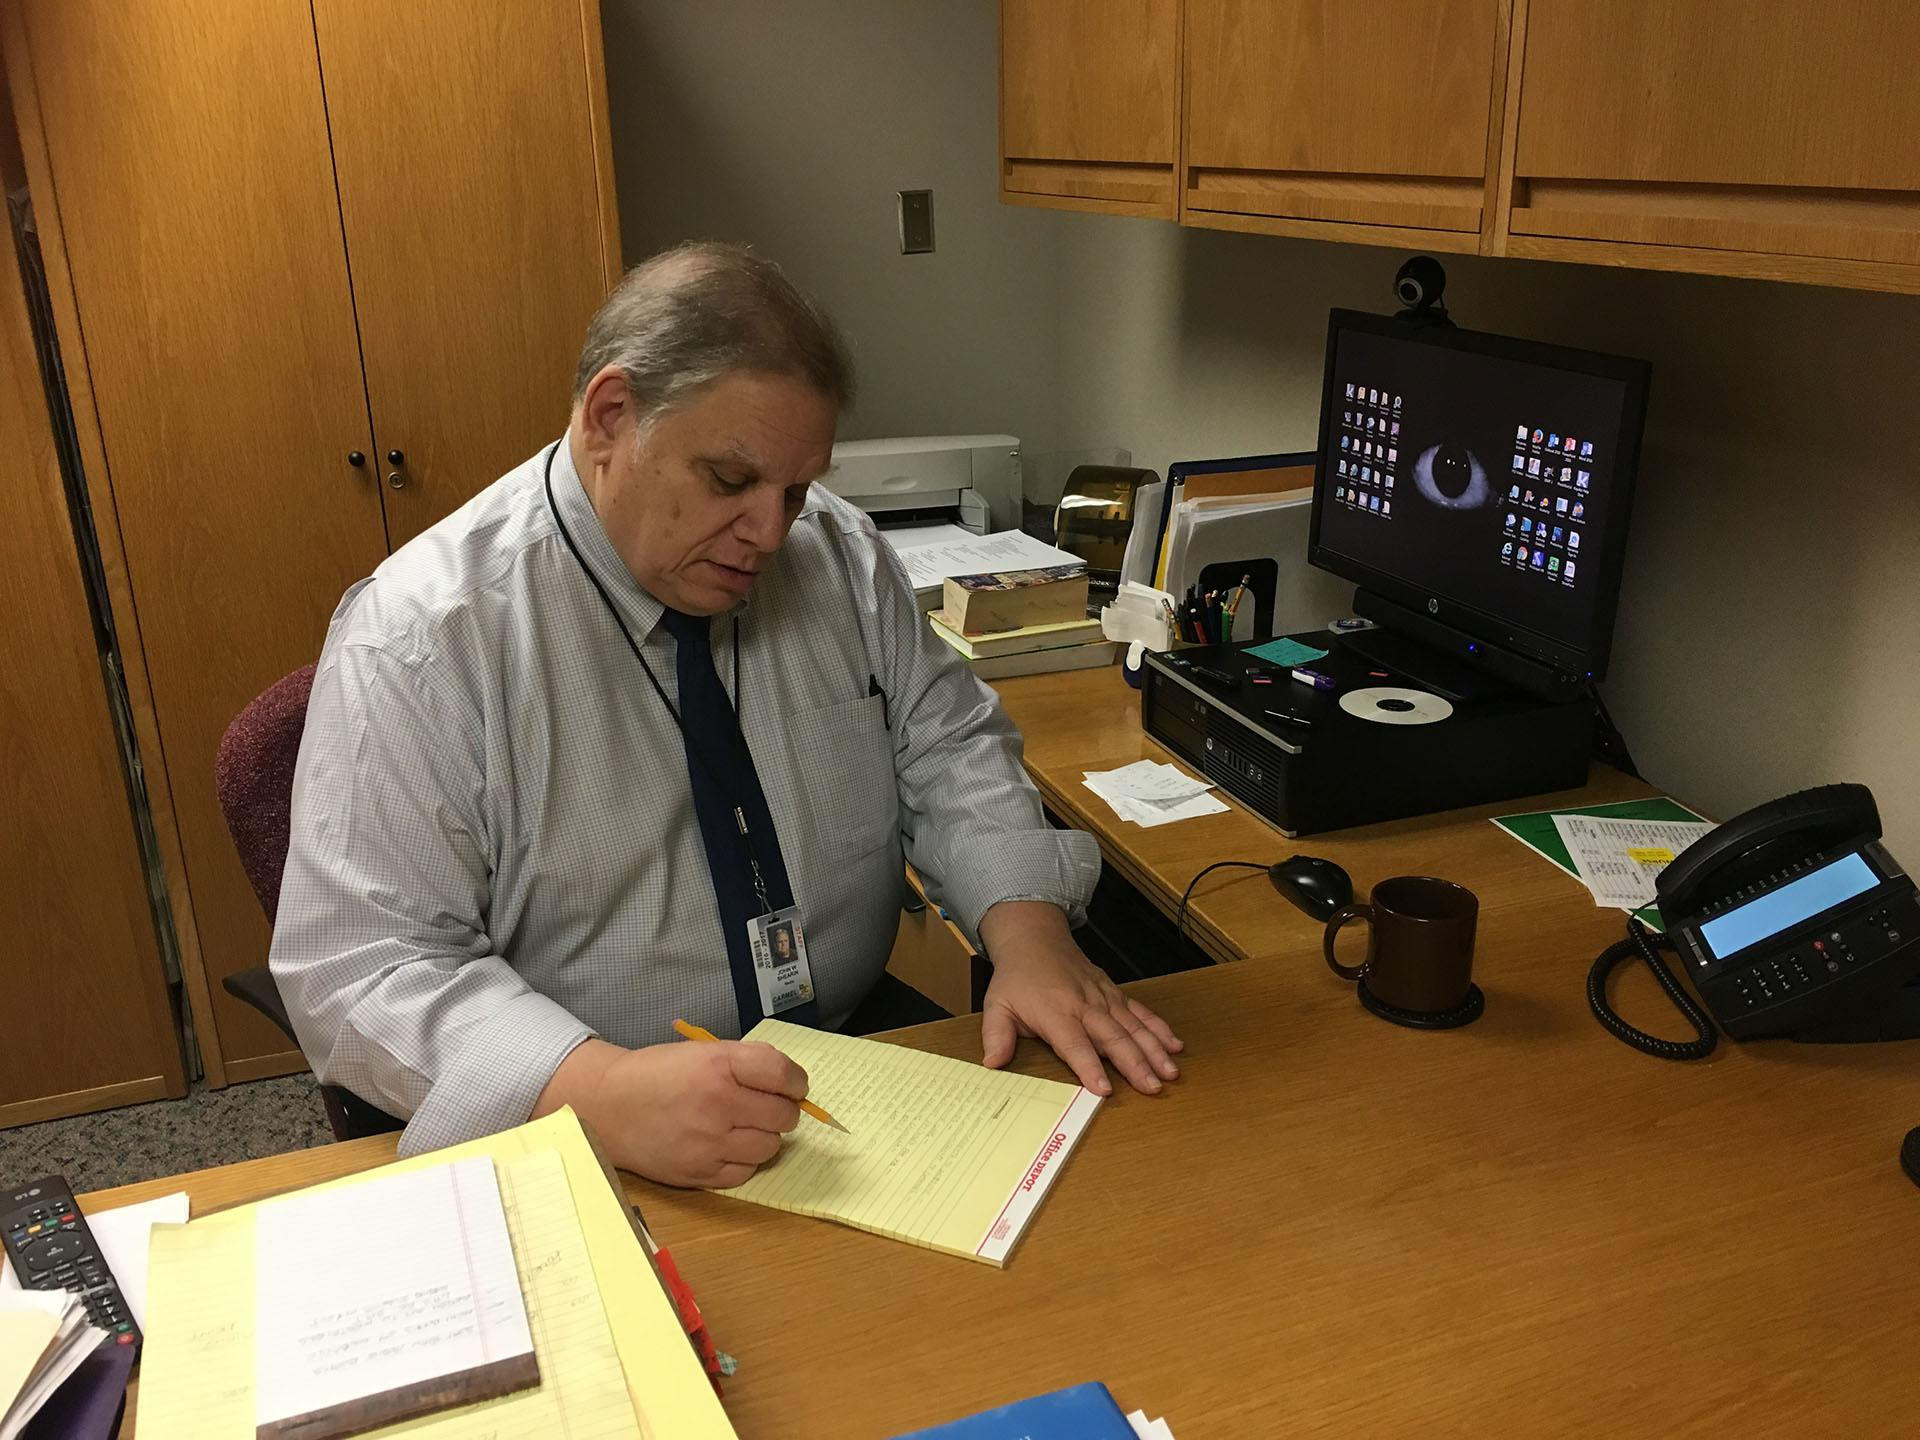 A.C.T. coach John Shearin sits at his desk after looking over some of statistics on the A.C.T. He said he has enjoyed being the coach of the team for years, and is retiring at the end of the school year.